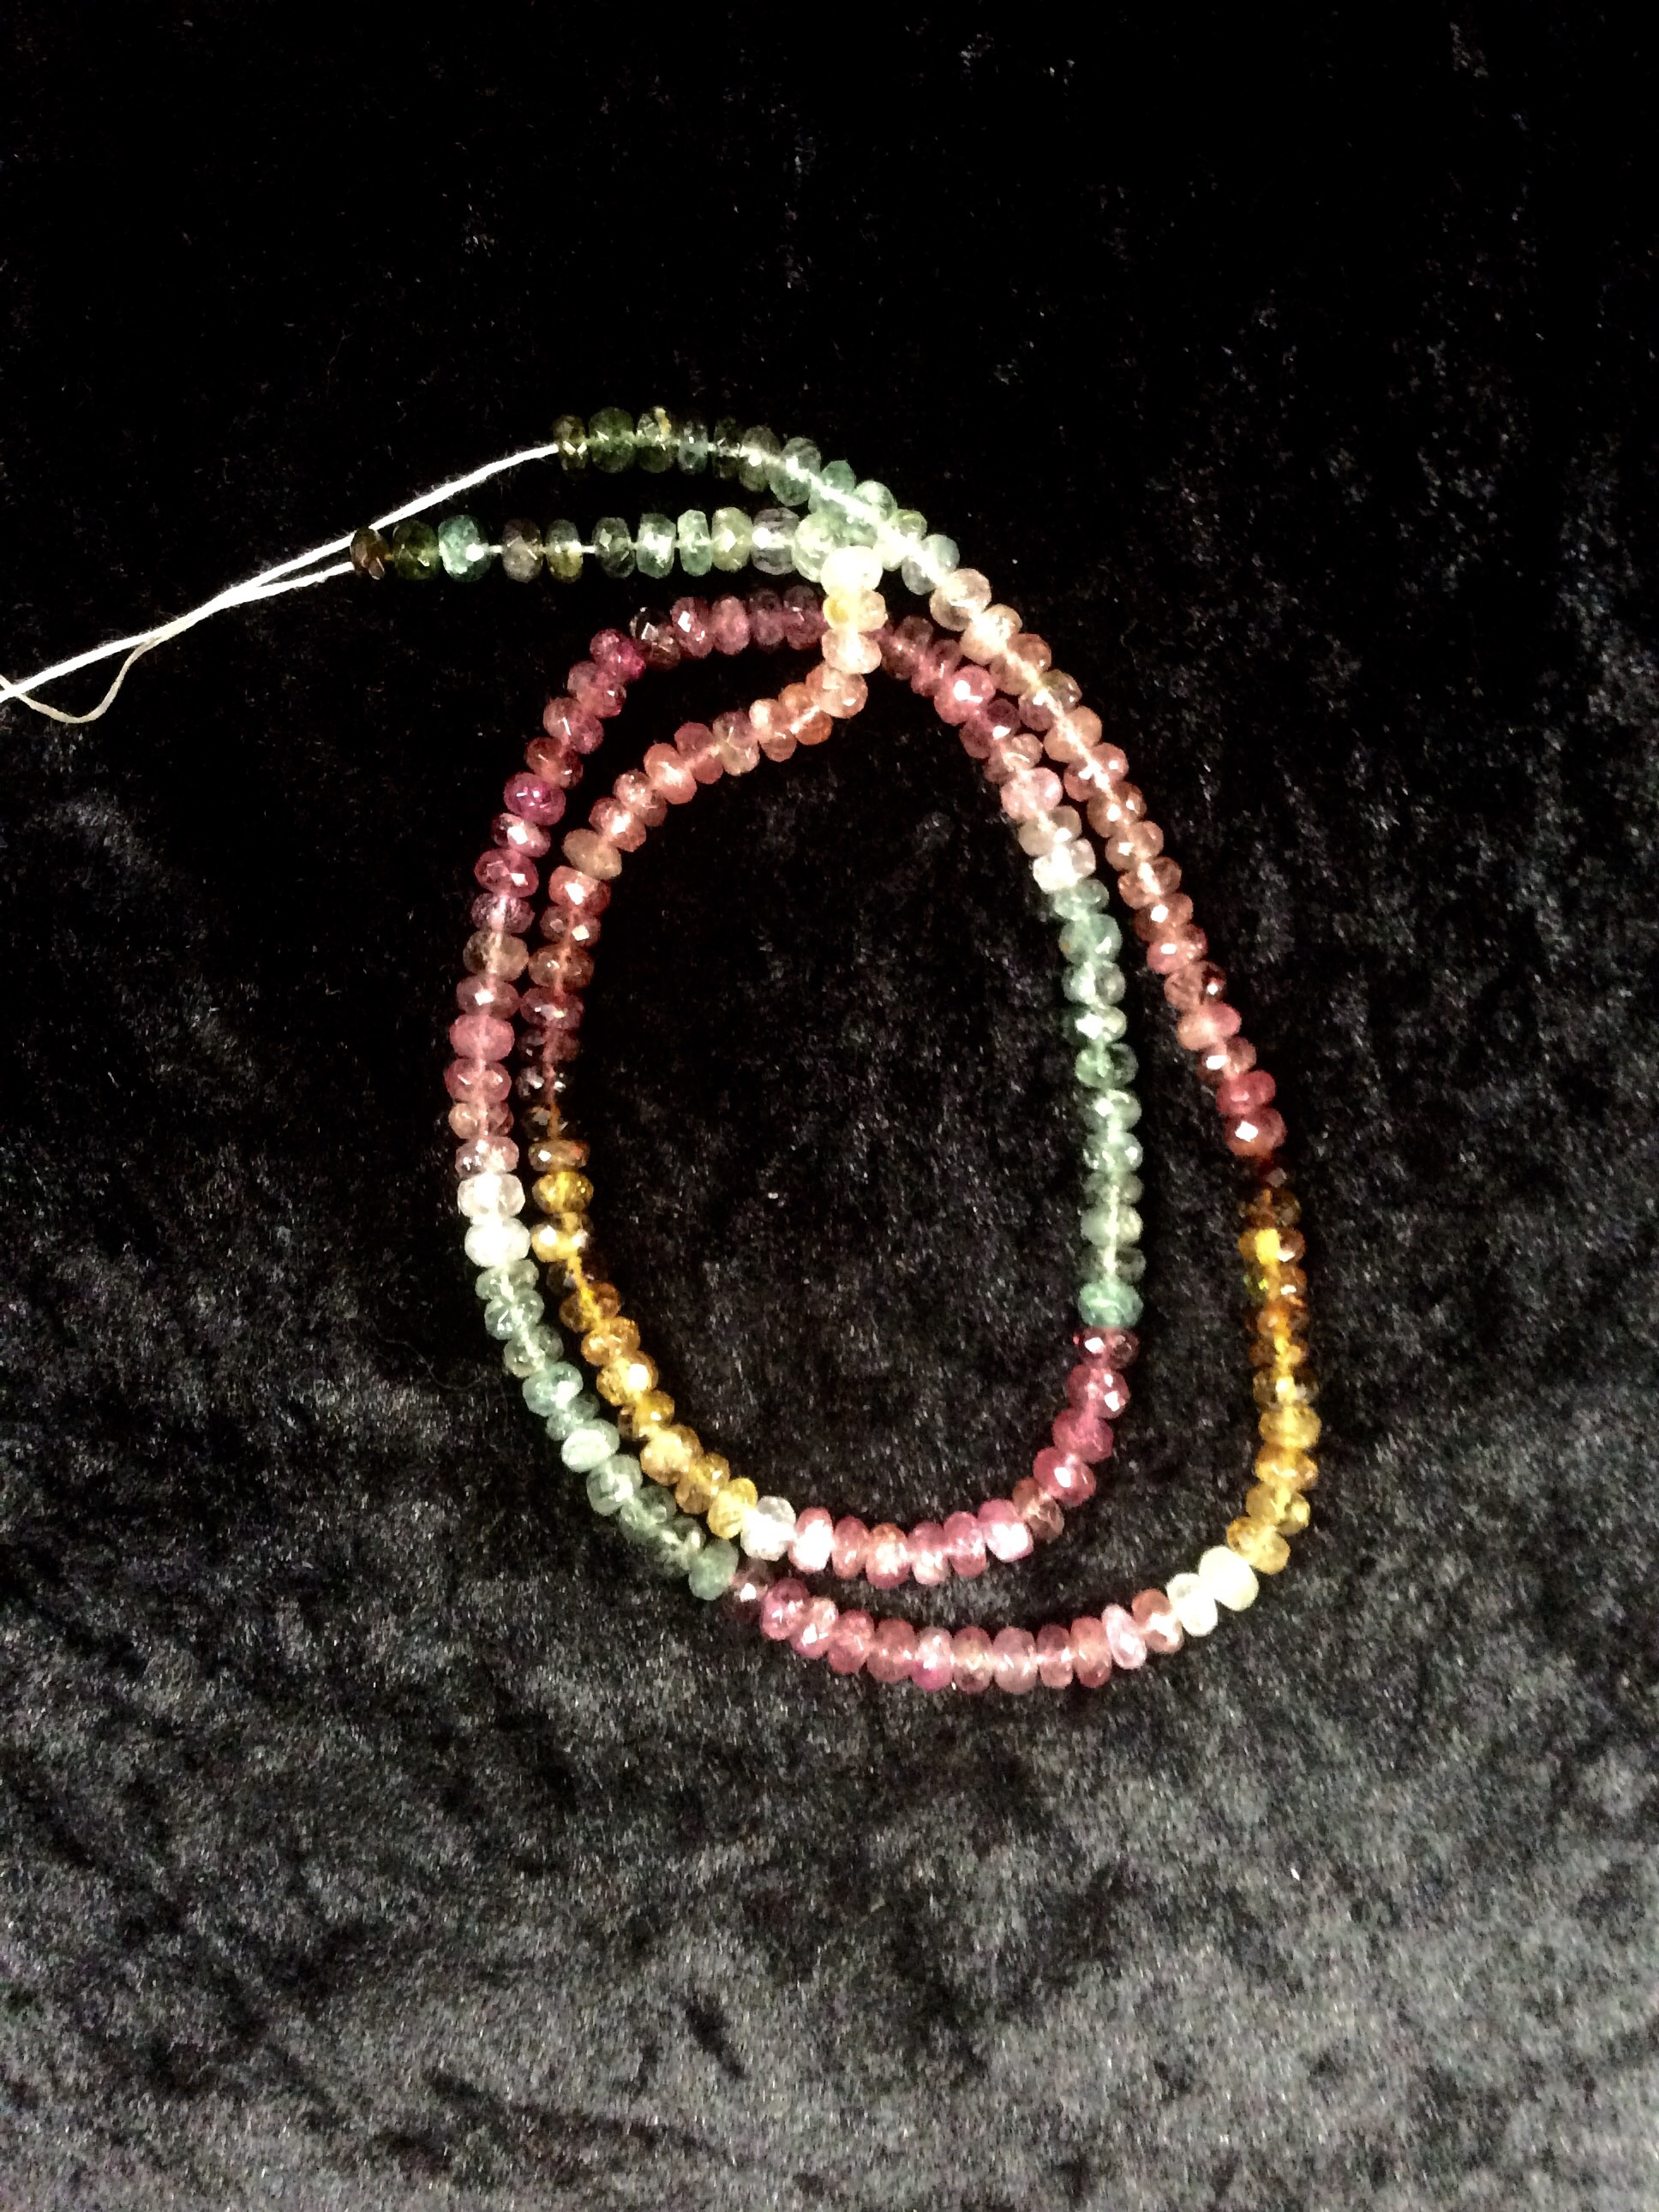 Wearing Crystals: Tourmaline faceted beads